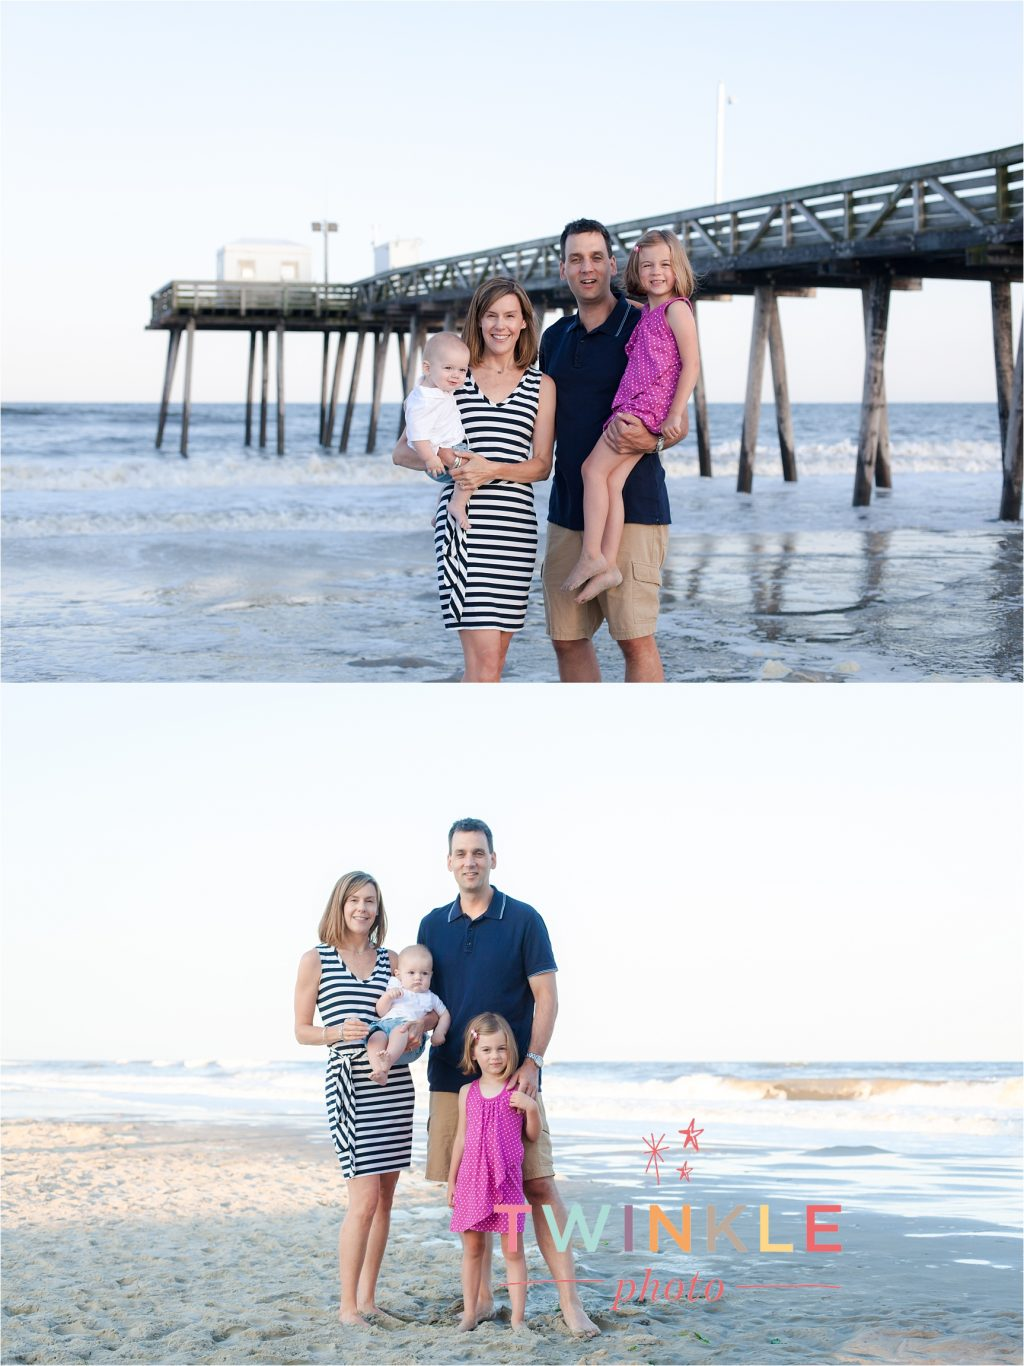 OCNJ Ocean City NJ New Jersey Beach Family Photography Photographer Twinkle Photo-06